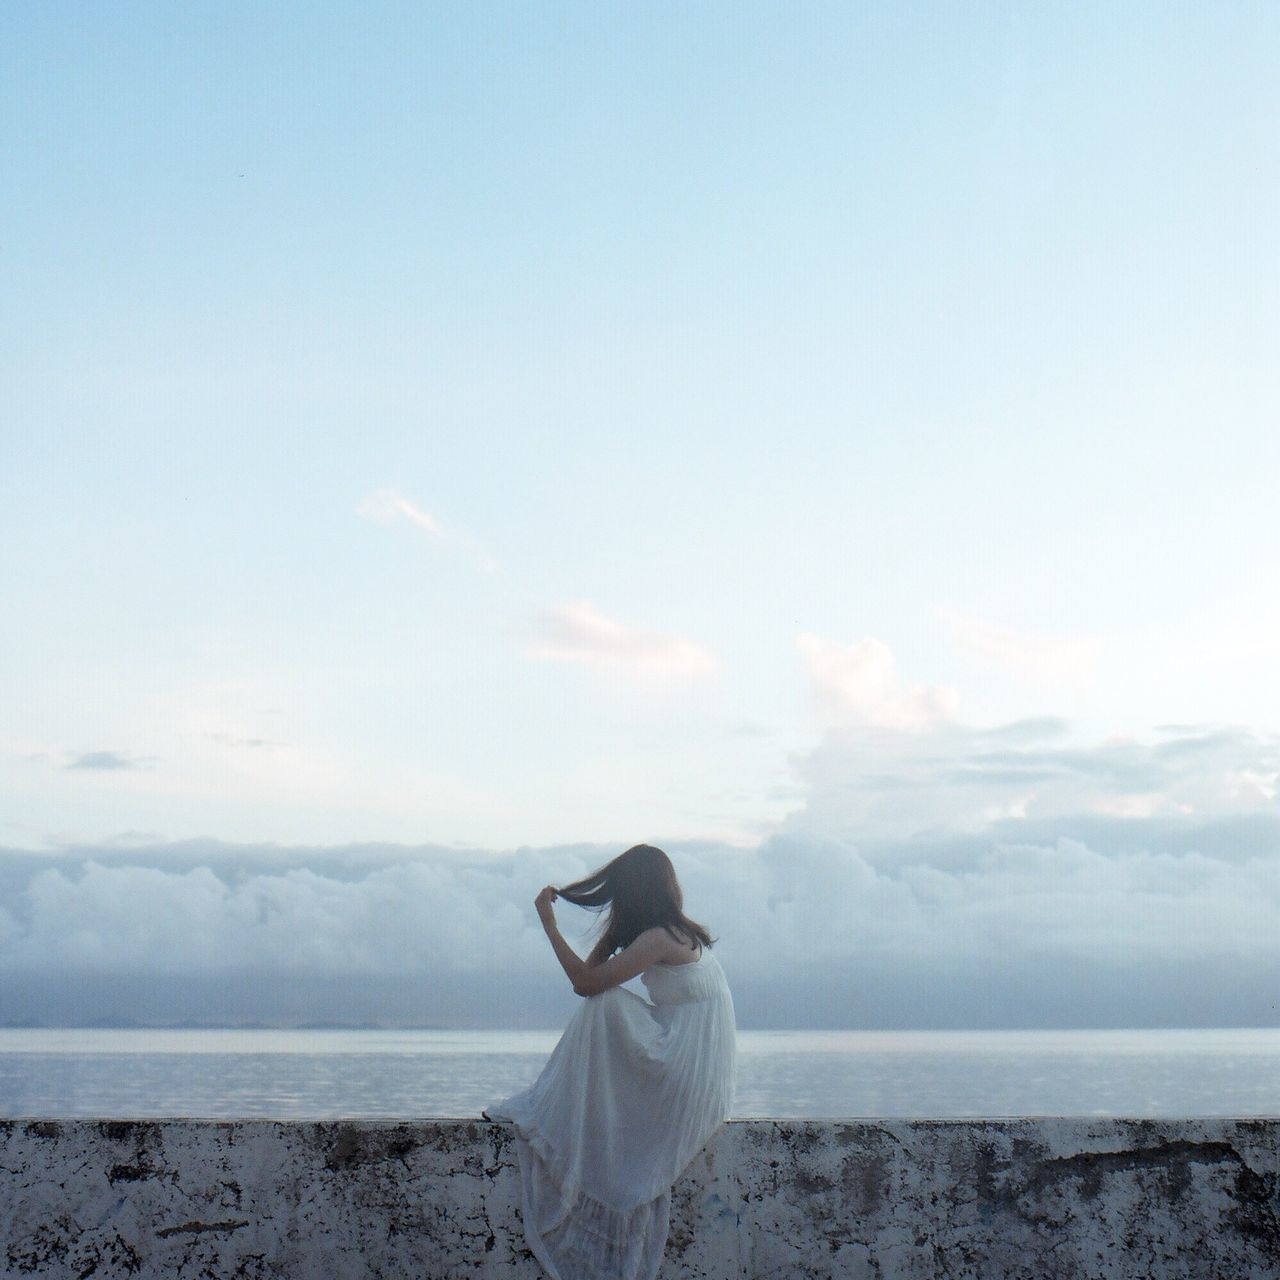 sky, standing, sea, one person, real people, cloud - sky, horizon over water, nature, water, rear view, day, outdoors, women, beauty in nature, tranquil scene, young adult, scenics, beach, leisure activity, tranquility, young women, wedding dress, bride, adult, people